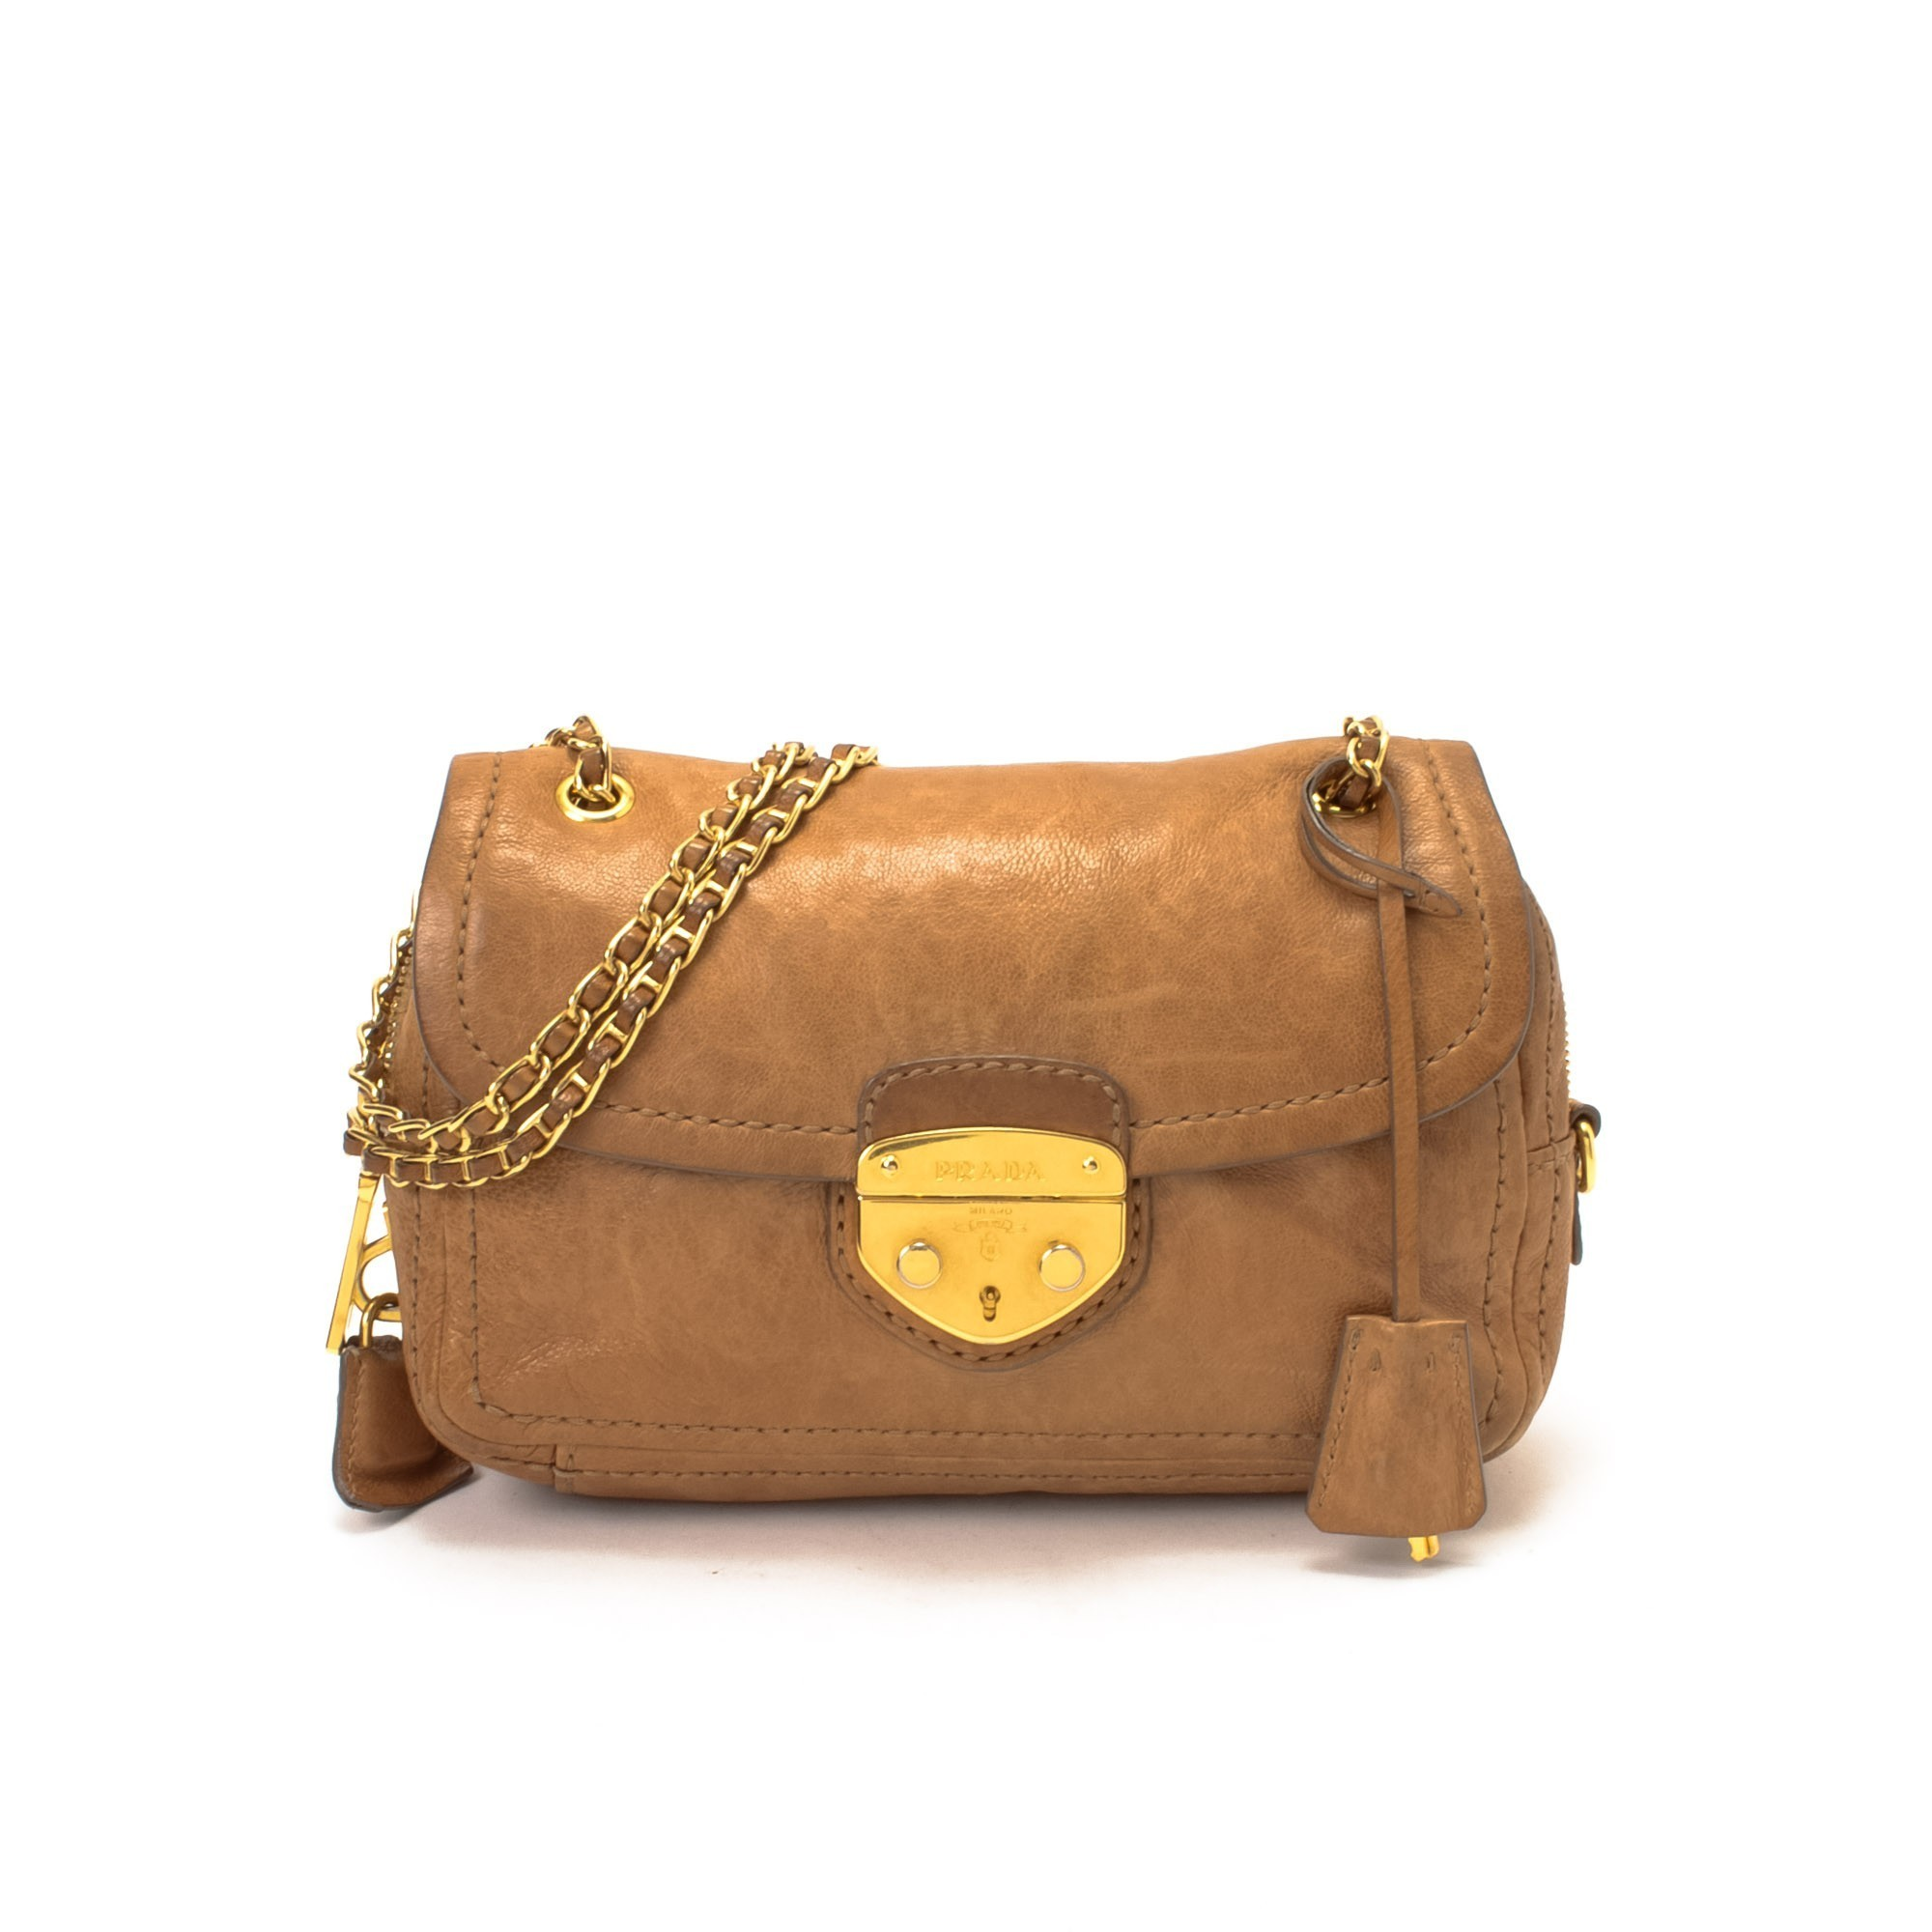 Prada Bag Beige Prada Chain Crossbody Bag